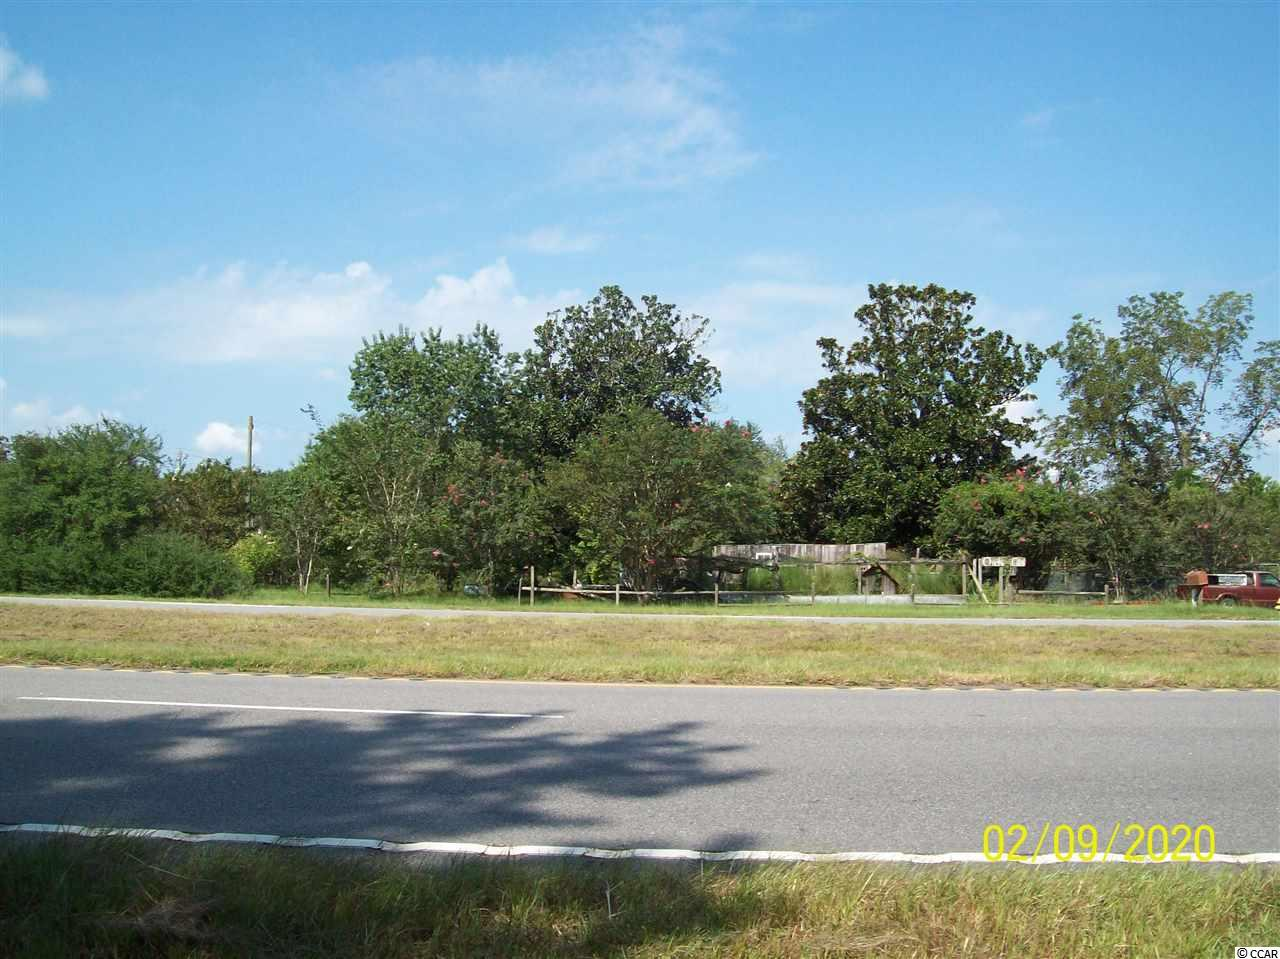 VERY LARGE 5BR BRICK HOUSE ON 12 ACRES, PLUS 3BR HOUSE, PLUS (2) 1BR HOUSES, MOBILE HOME, ASSORTMENT OF STORAGE BUILDINGS, SHEDS, BEAUTIFUL LAND, SEVERAL HUNDRED FT. ON HWY. 17, NICE FISH POND, HAS HOLE AVE., POWELL RD., AND HWY. 17 FRONTAGE, CAN SUBDIVIDE, GREAT PRICE!!!!!